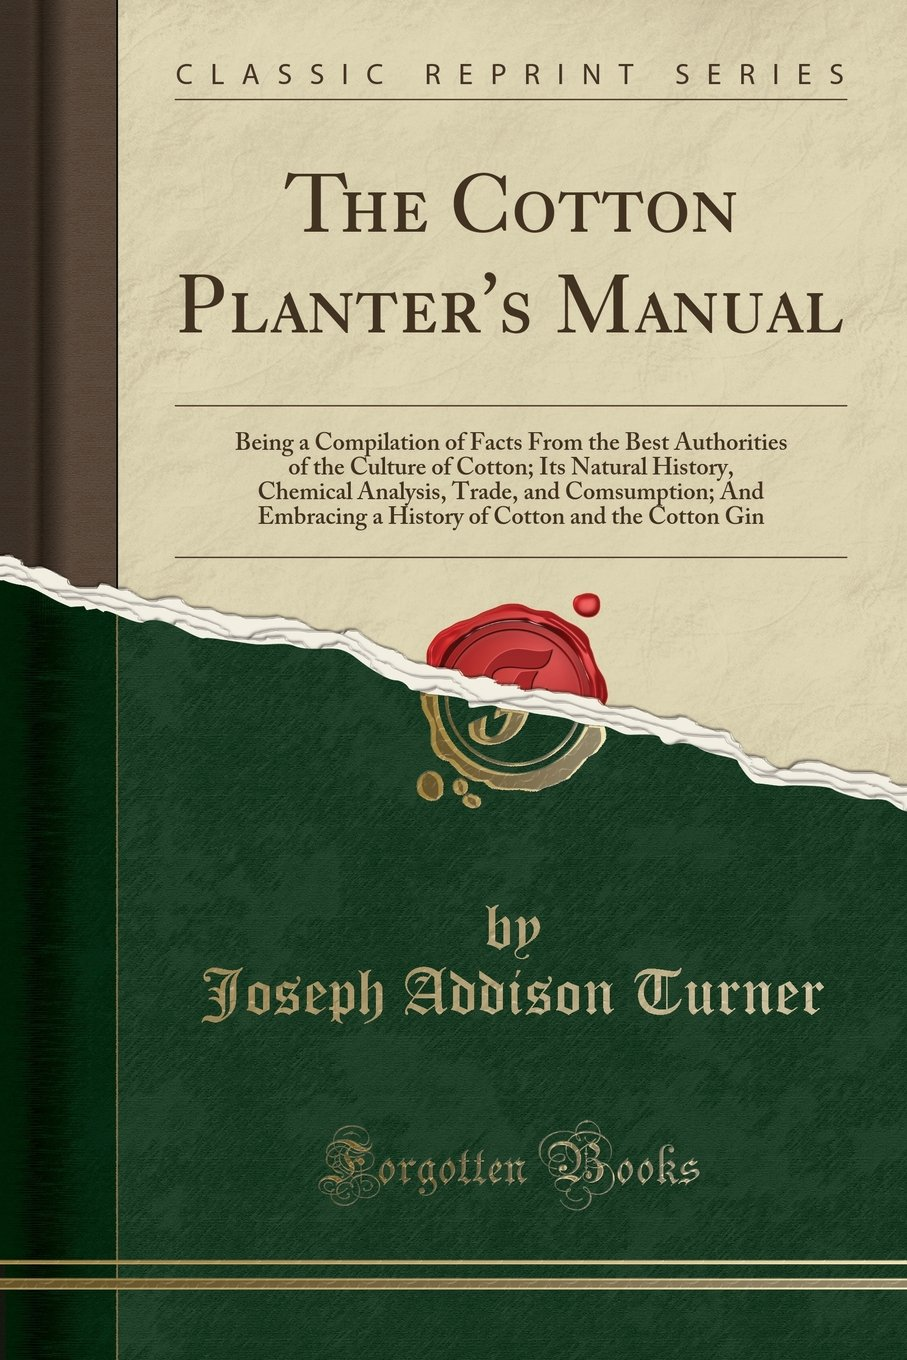 The Cotton Planter's Manual: Being a Compilation of Facts From the Best Authorities of the Culture of Cotton; Its Natural History, Chemical Analysis, ... Cotton and the Cotton Gin (Classic Reprint) pdf epub